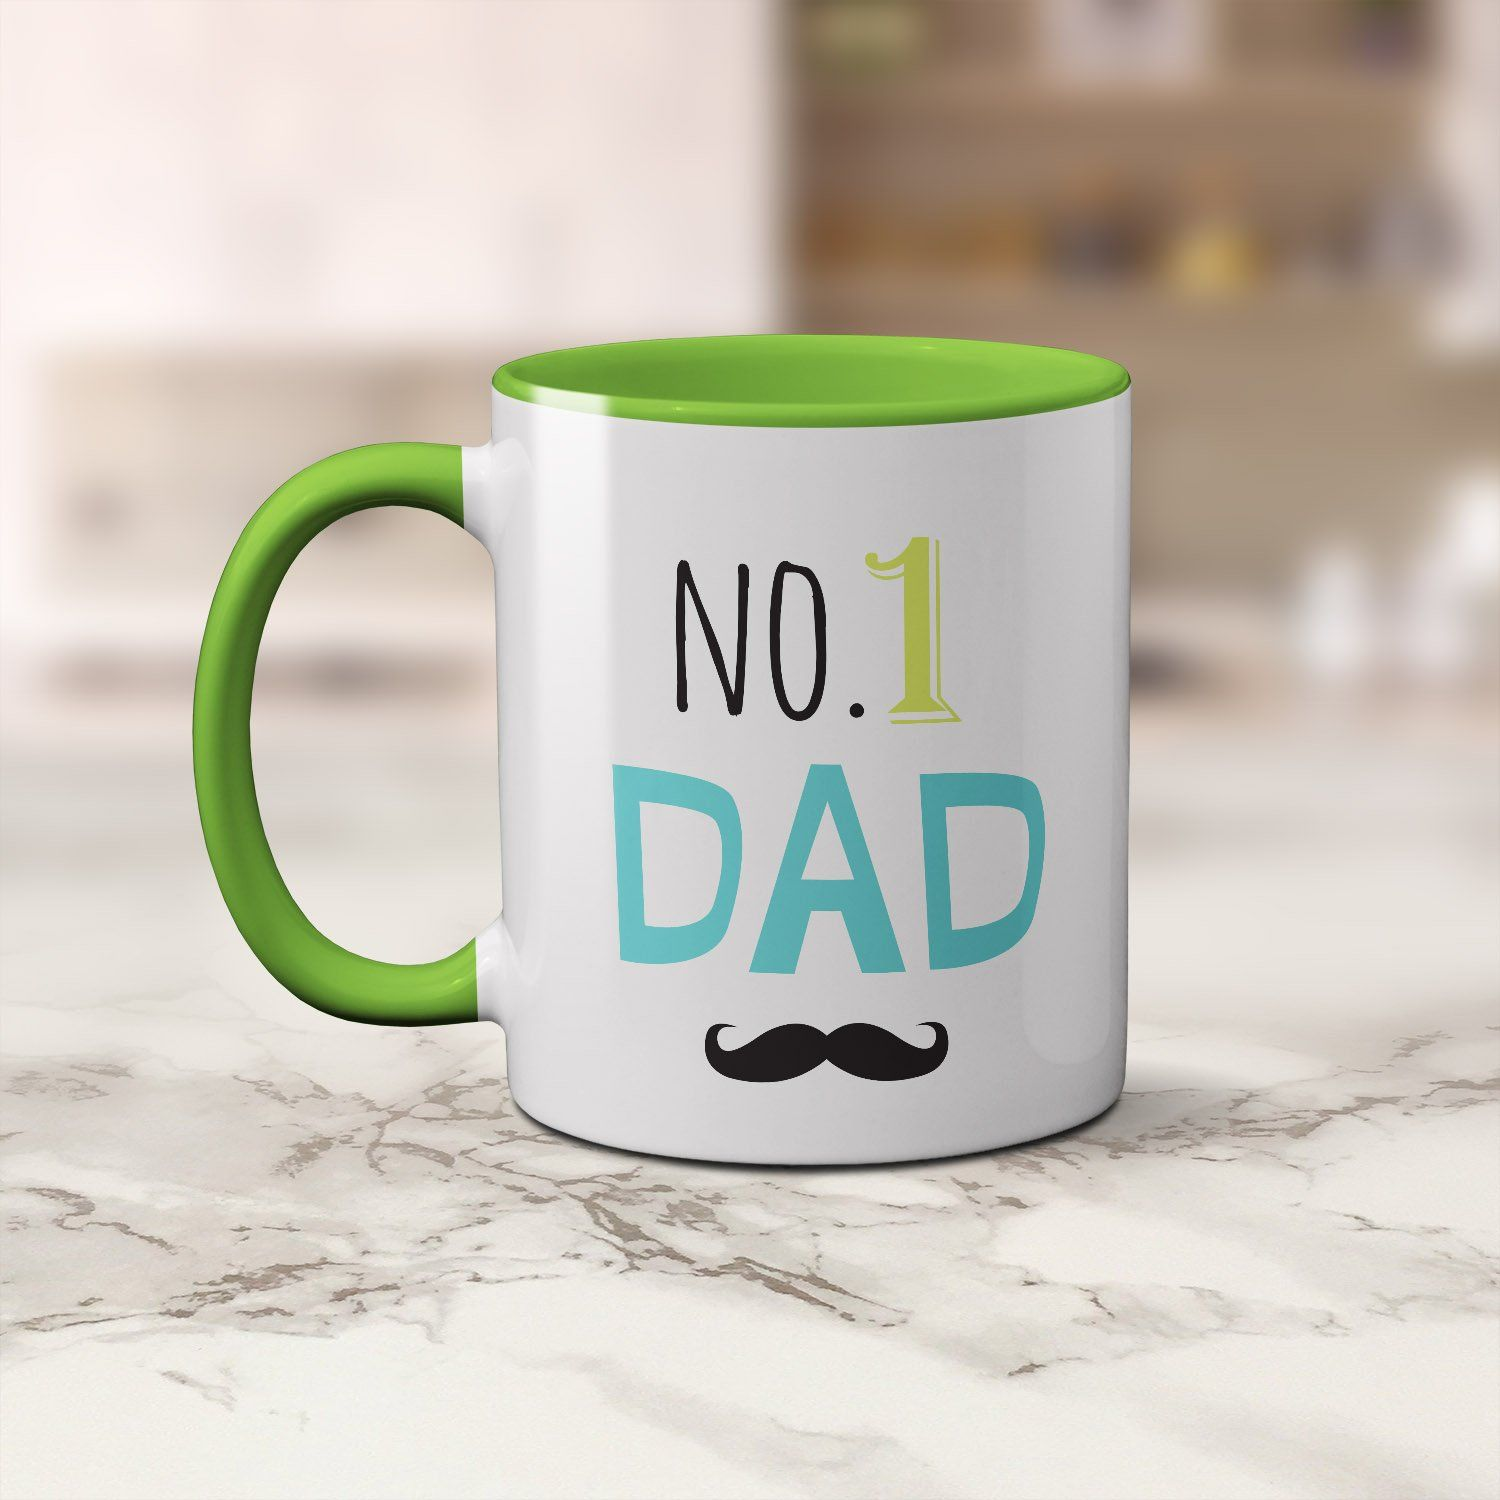 A Bright Coffee Mug For Dad With The Artwork No. 1 Dad With A Black  Moustache Perfect For Fatheru0027s Day Or For His Birthday. This Is A 11oz White  Coffee Cup ...